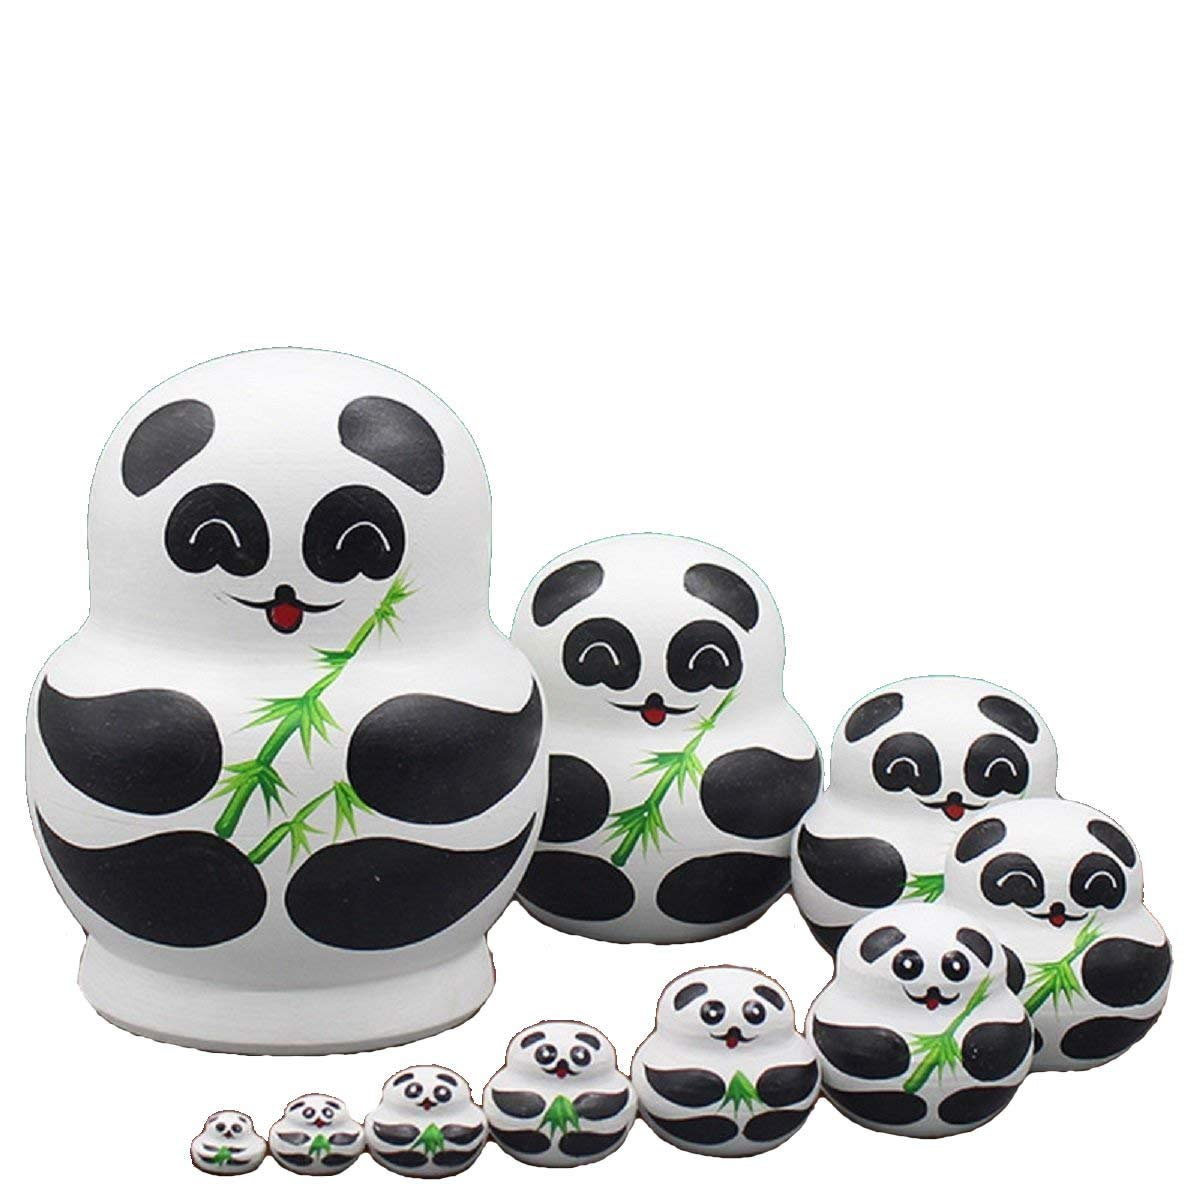 LK King&Light 10pcs Pandas Russian Nesting Dolls by LK (Image #1)